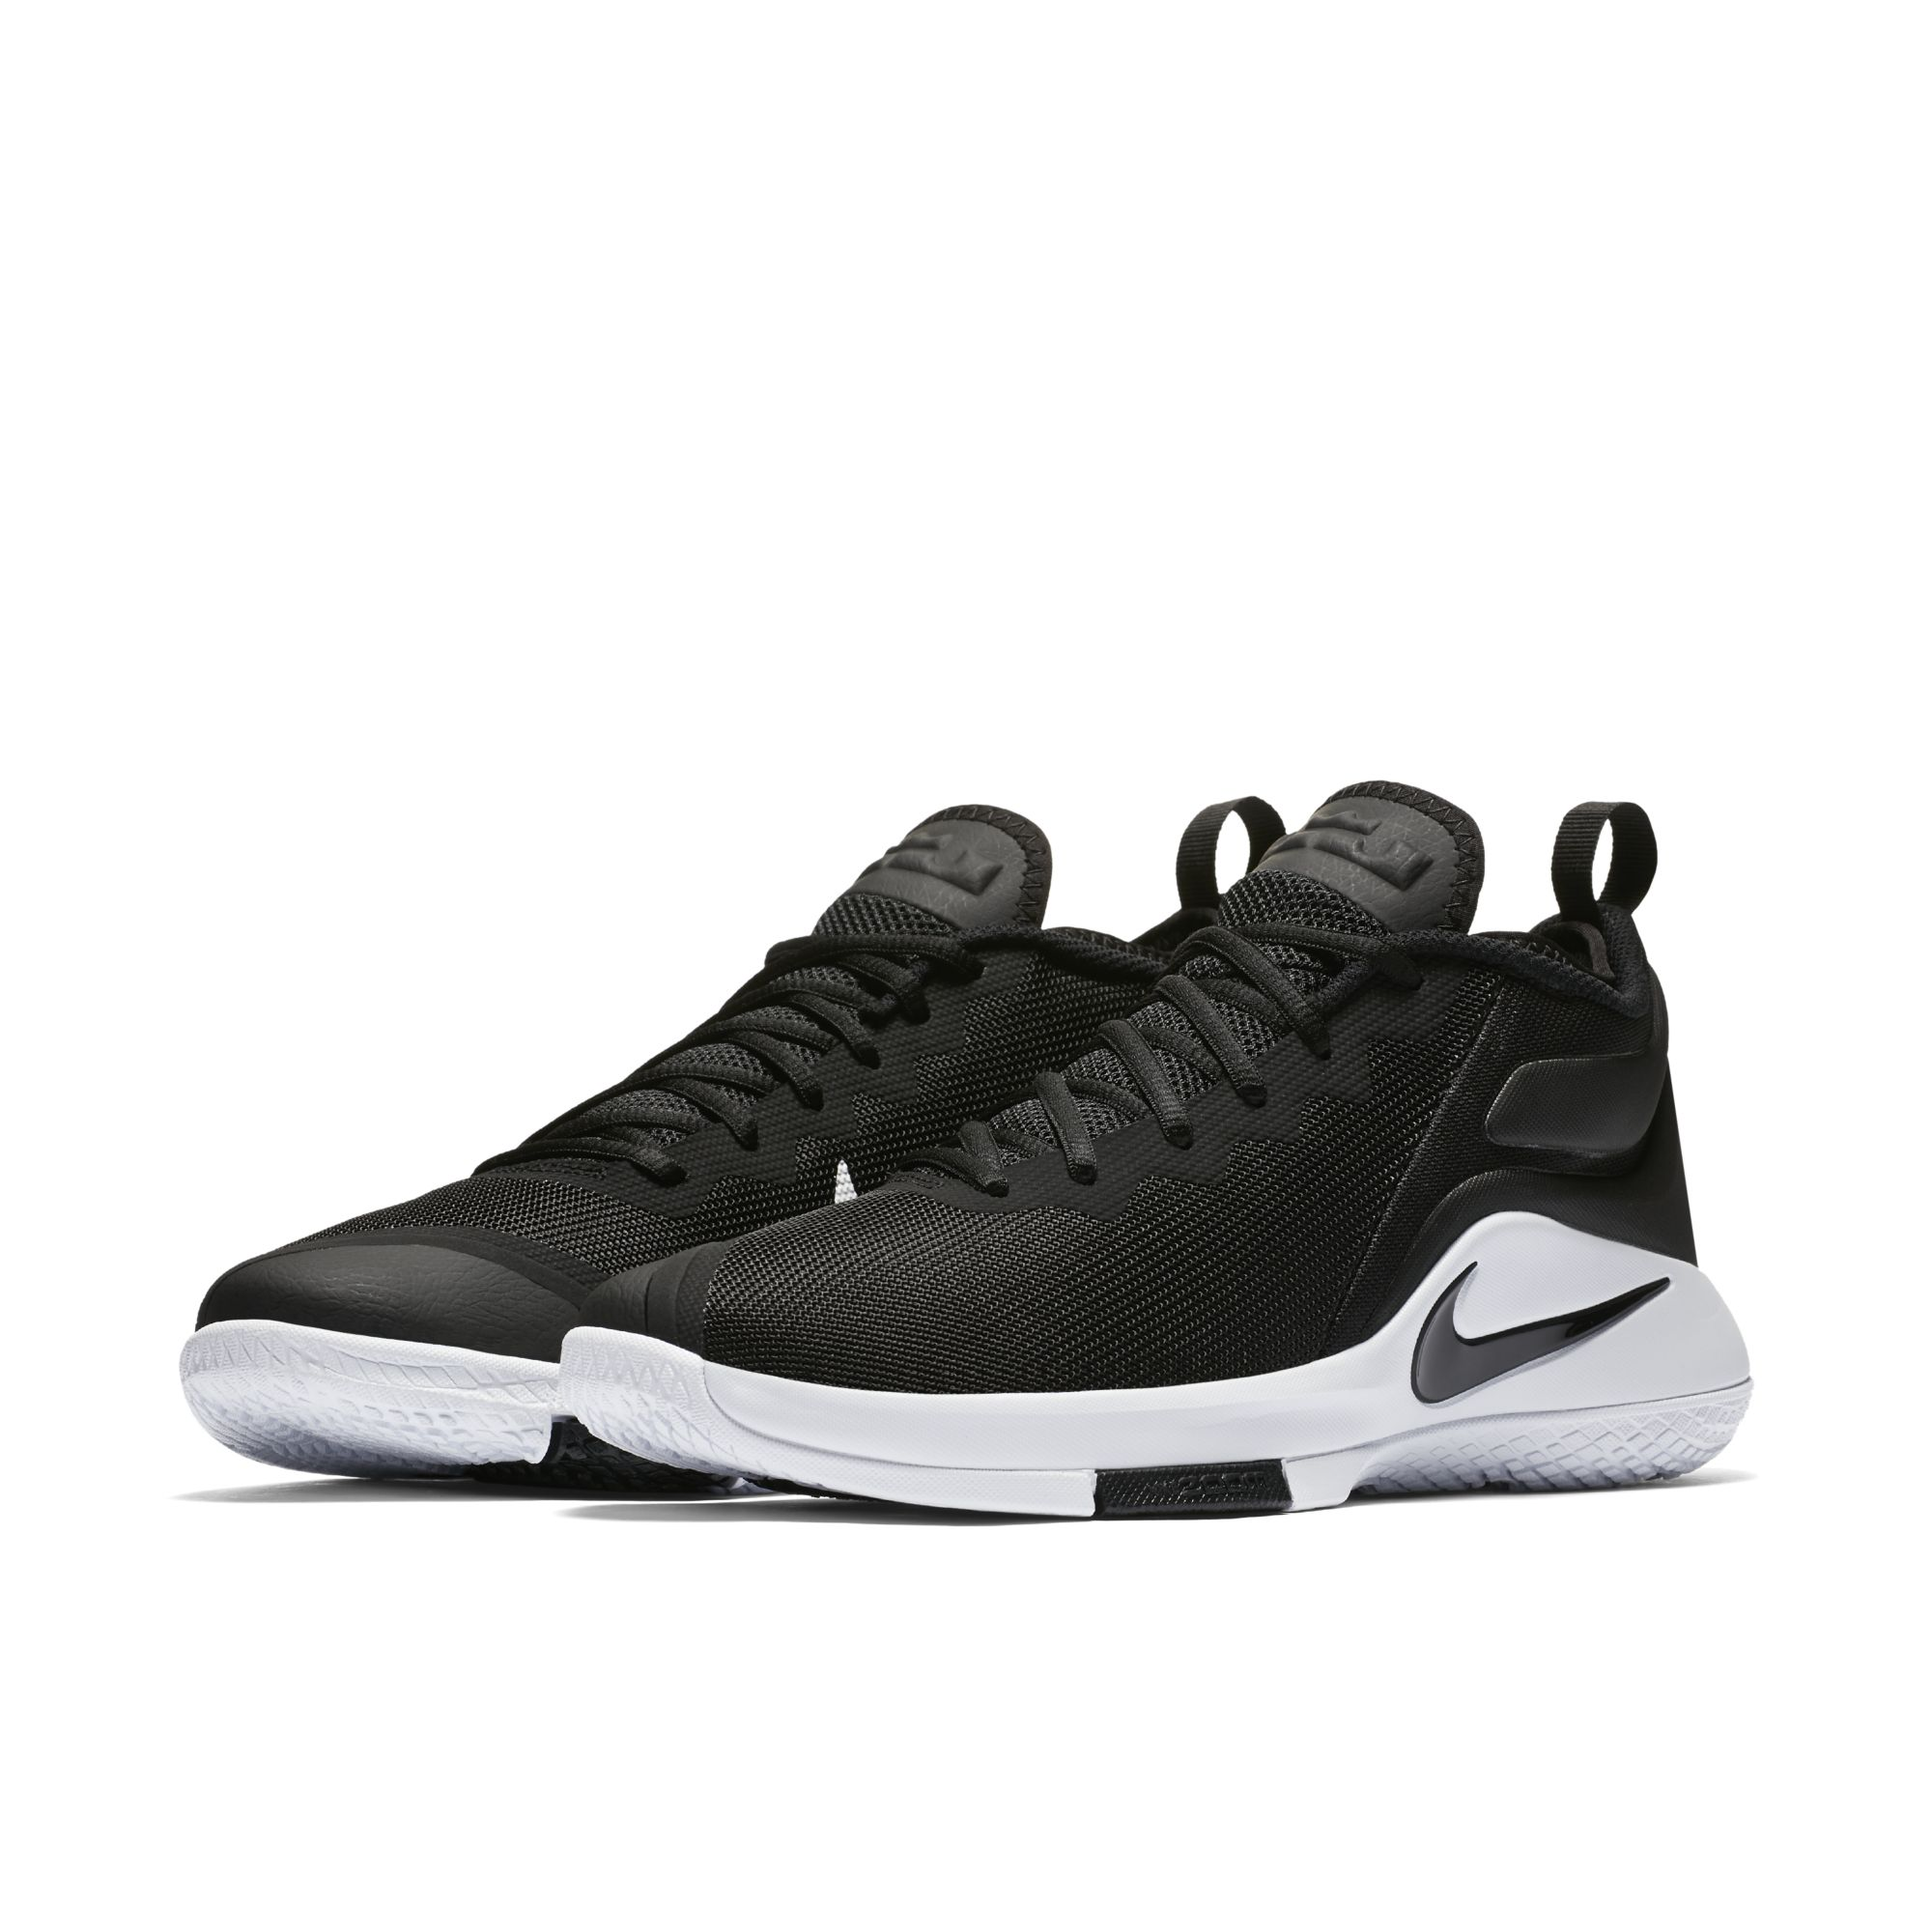 681d6636bfff Original Authentic NIKE LEBRON WITNESS II EP Lightweight Support Men s  Basketball Shoes Breathable Low Top Sneakers Cozy AA3820-in Basketball Shoes  from ...